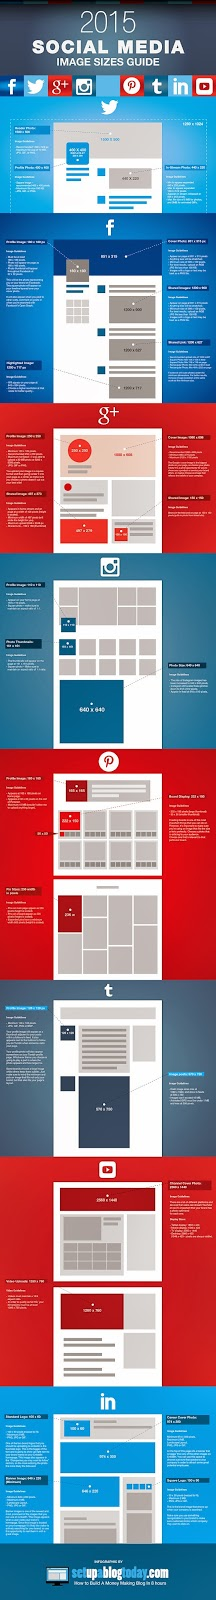 http://www.bitrebels.com/social/2015-social-media-image-size-cheat-sheet/